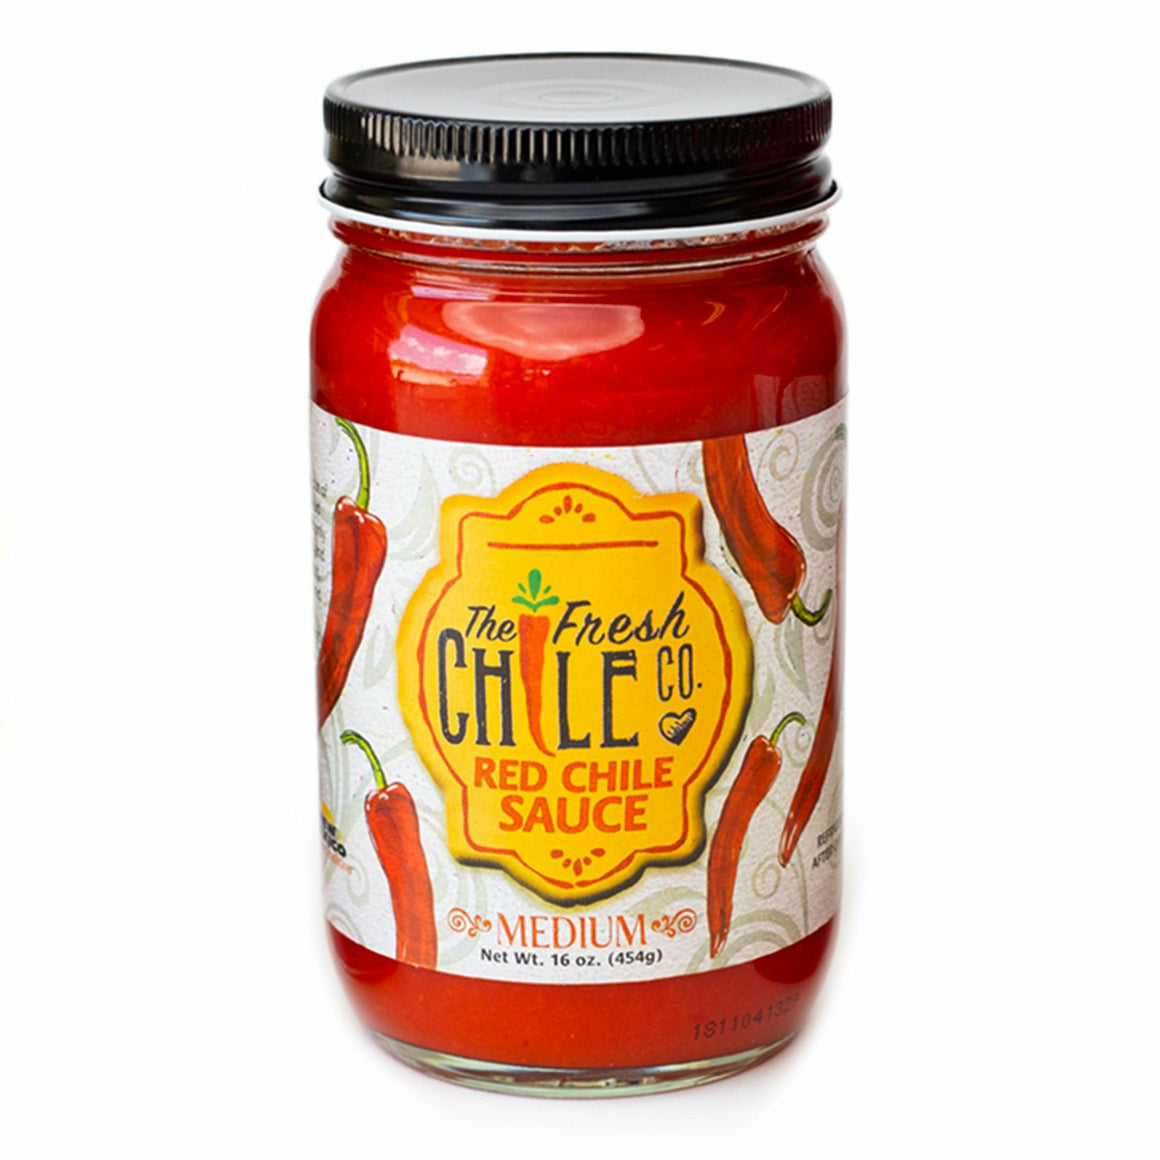 The Fresh Chile Co. Red Chile Sauce Medium 16oz - The Kansas City BBQ Store